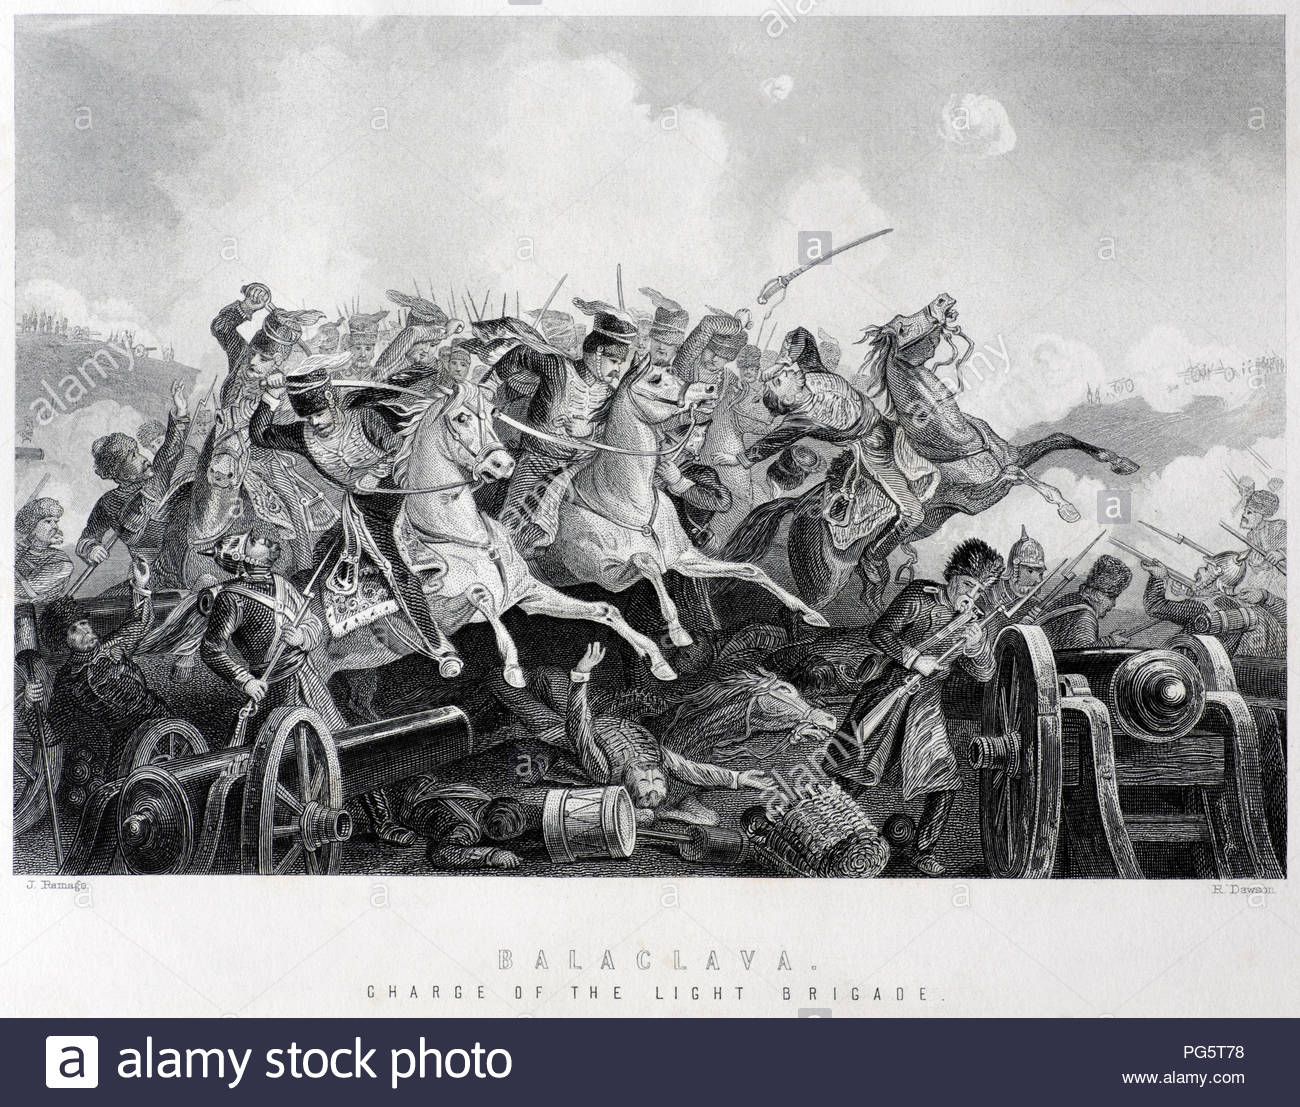 The Charge of the Light Brigade was a charge of British light cavalry led by Lord Cardigan against Russian forces during the Battle of Balaclava on 25th October 1854 in the Crimean War. Illustration from 1890. - Stock Image